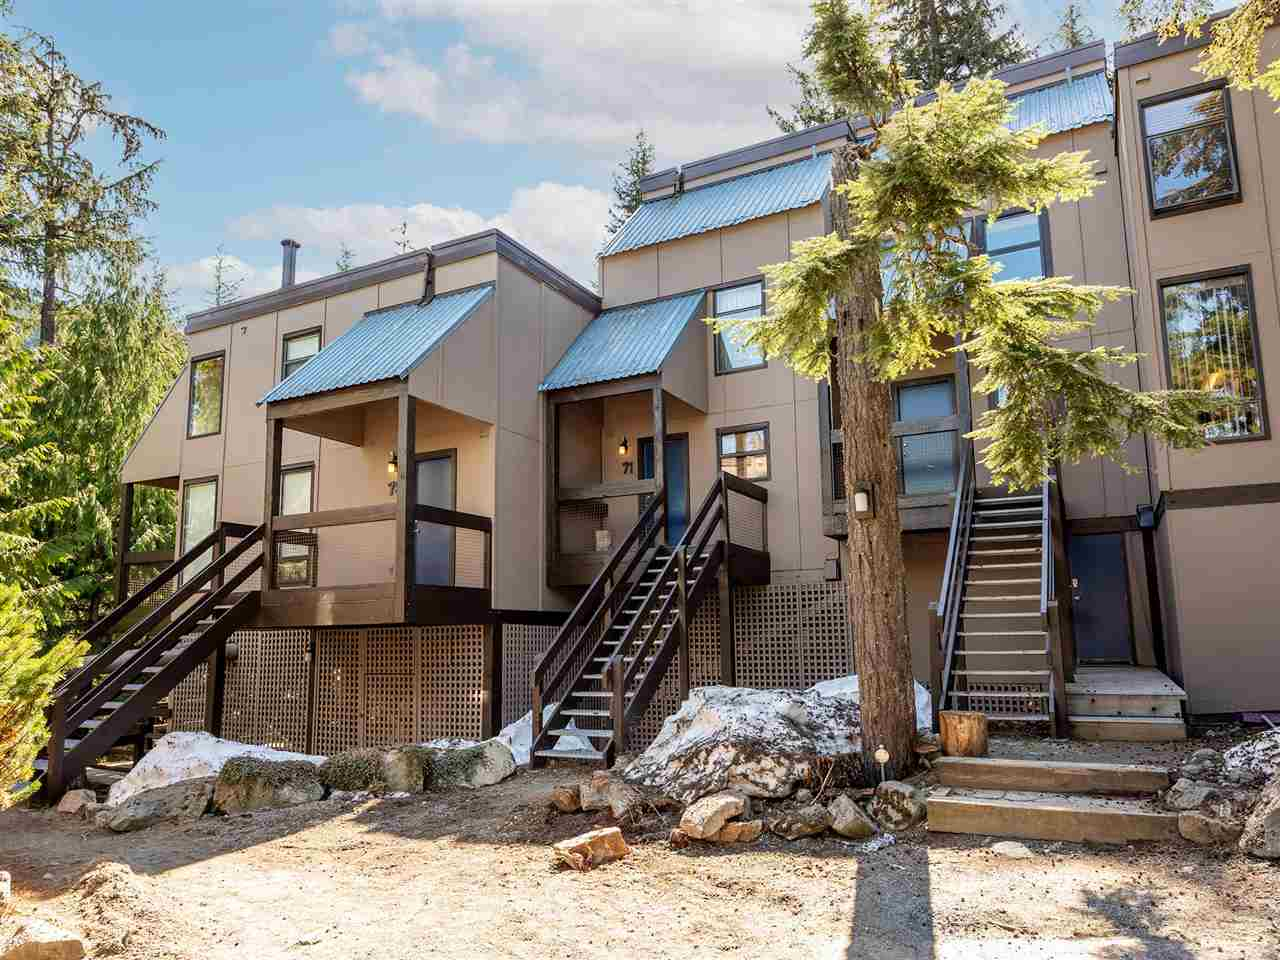 71 2400 CAVENDISH WAY - Whistler Creek Townhouse for sale, 3 Bedrooms (R2569305)